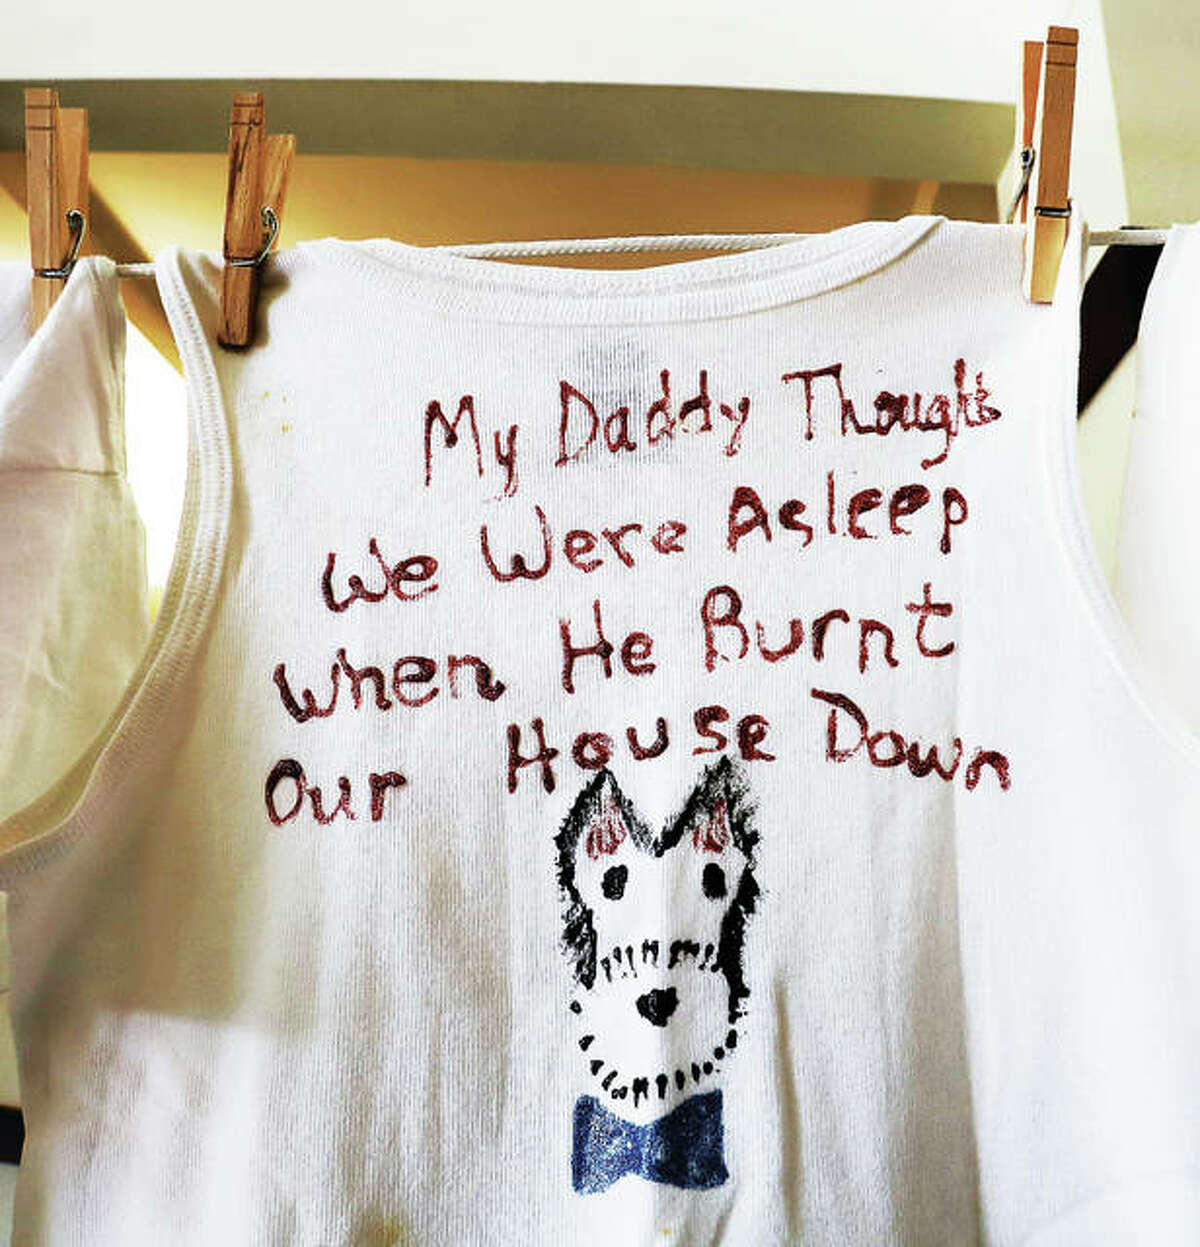 As in previous years, T-shirts decorated by children who have lived through domestic violence were hung from a clothesline describing the situation they each were involved in.